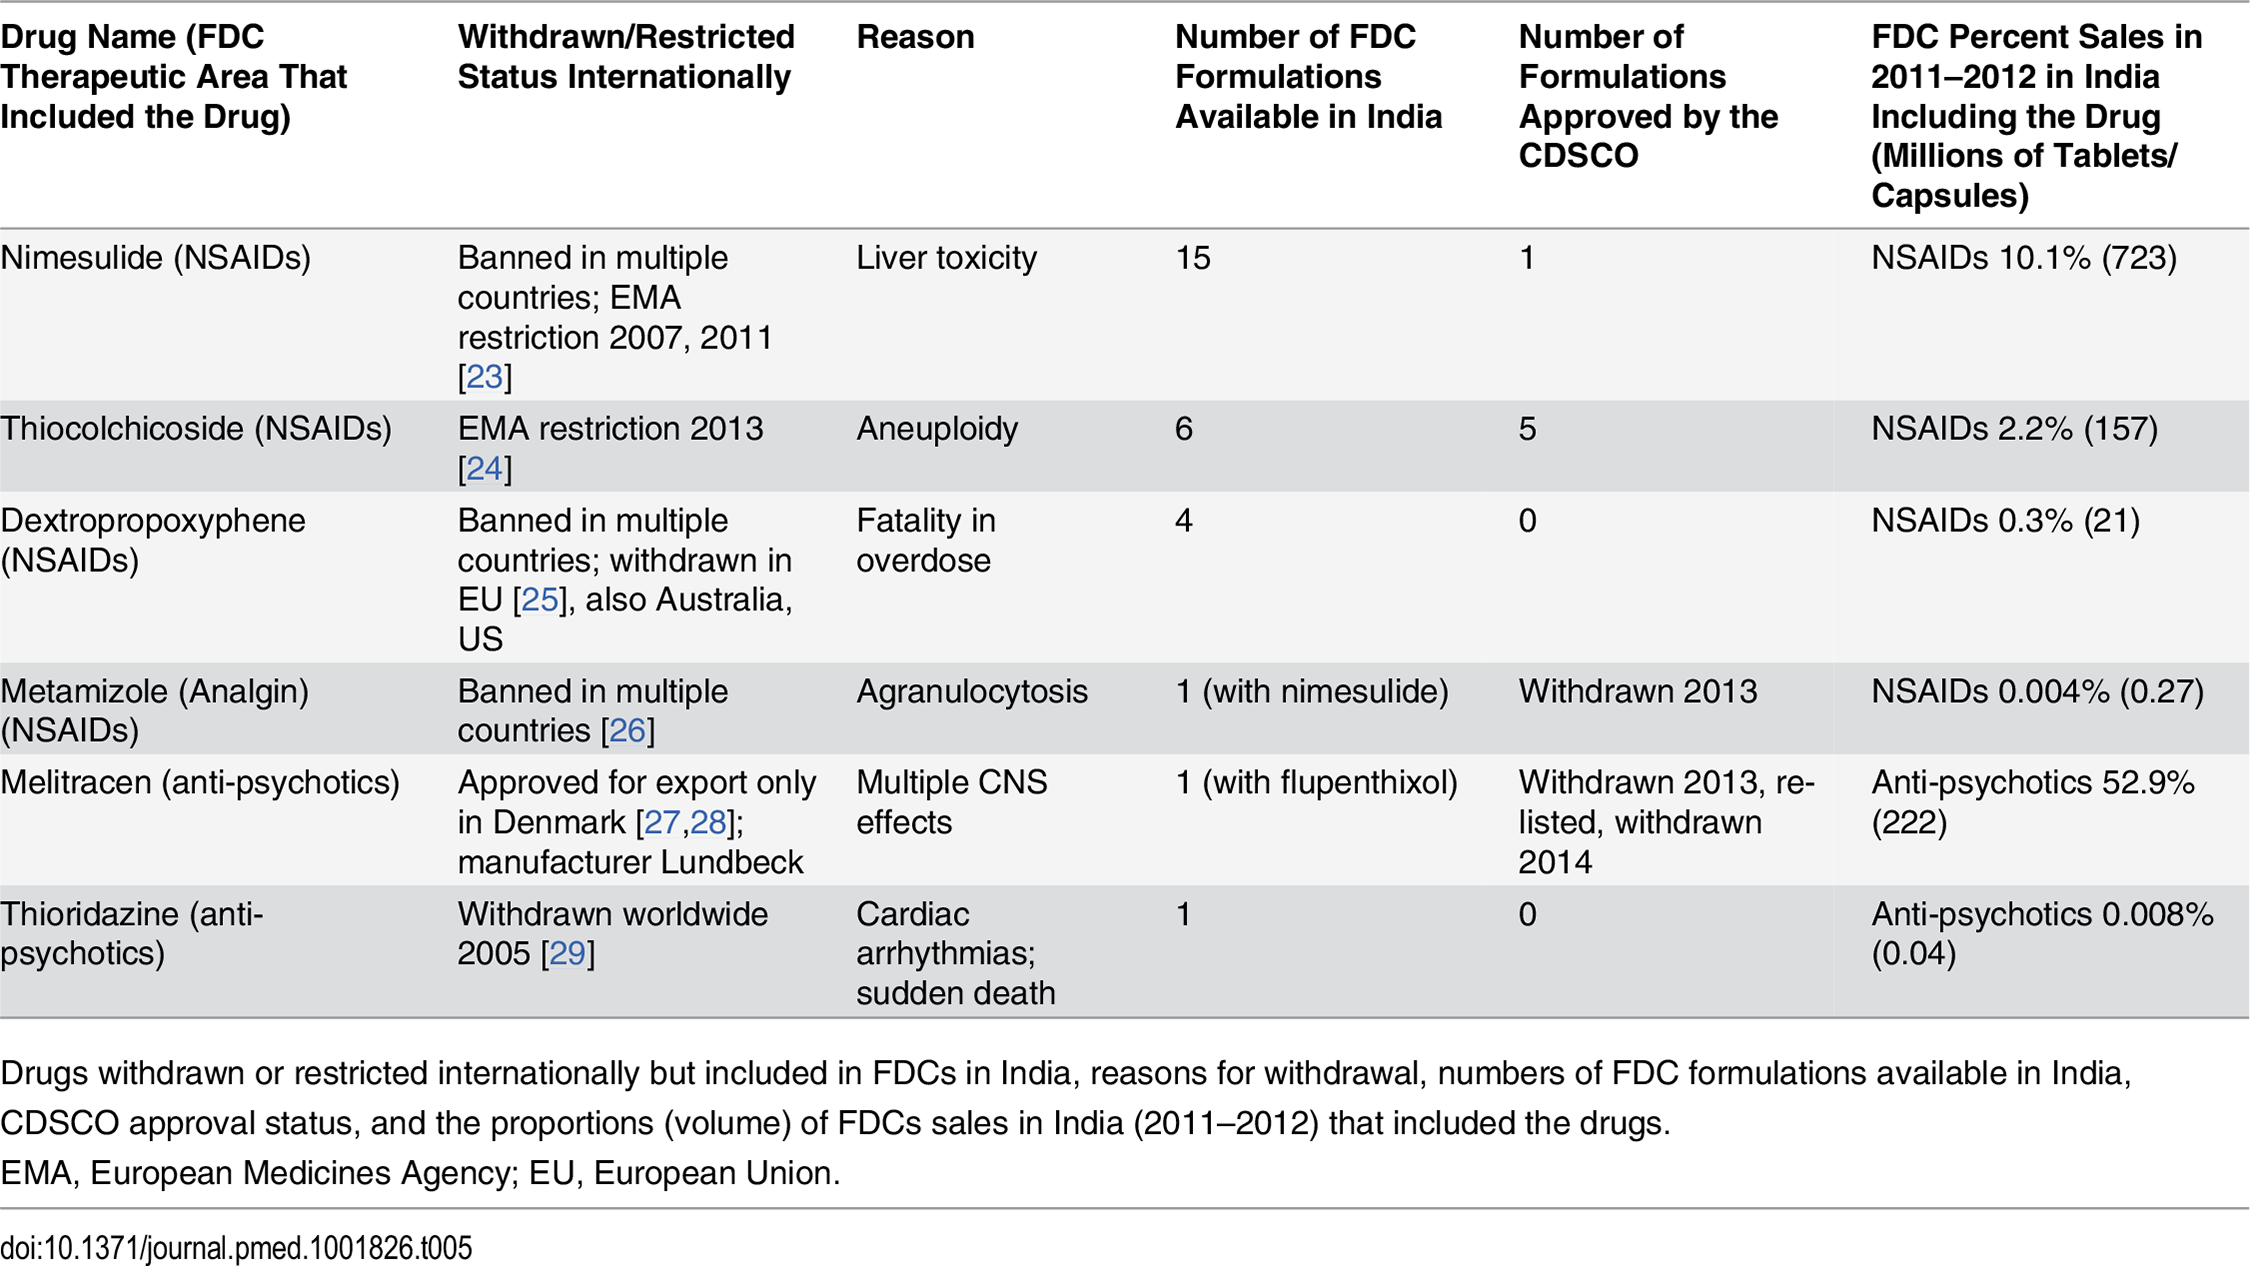 Drugs withdrawn or restricted internationally that were included in FDC formulations marketed in India.